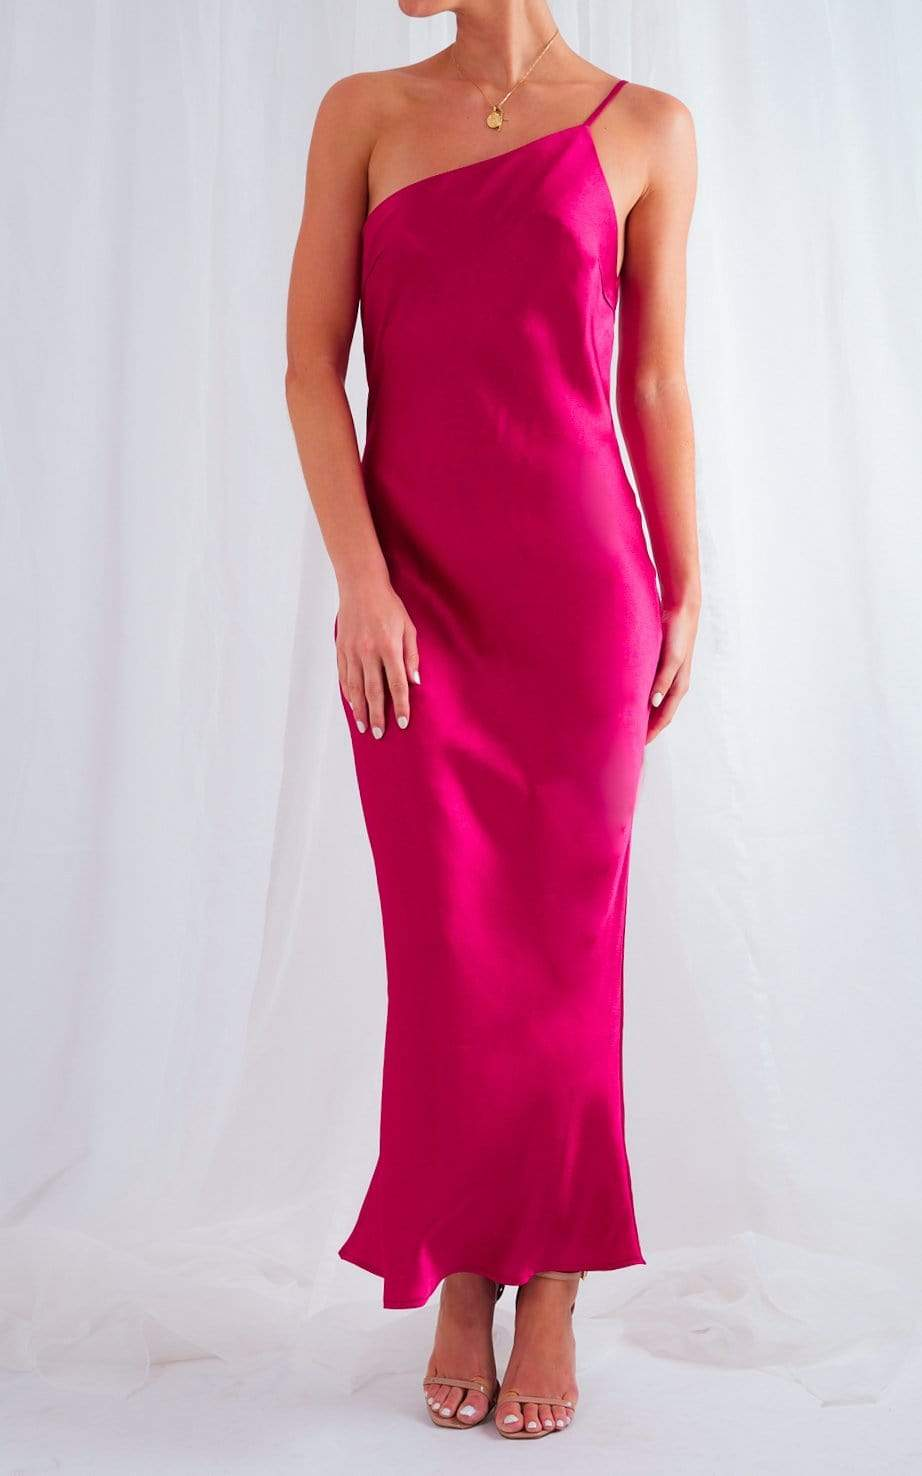 Amelia Slip Dress - Magenta, Dress - Pretty Lavish